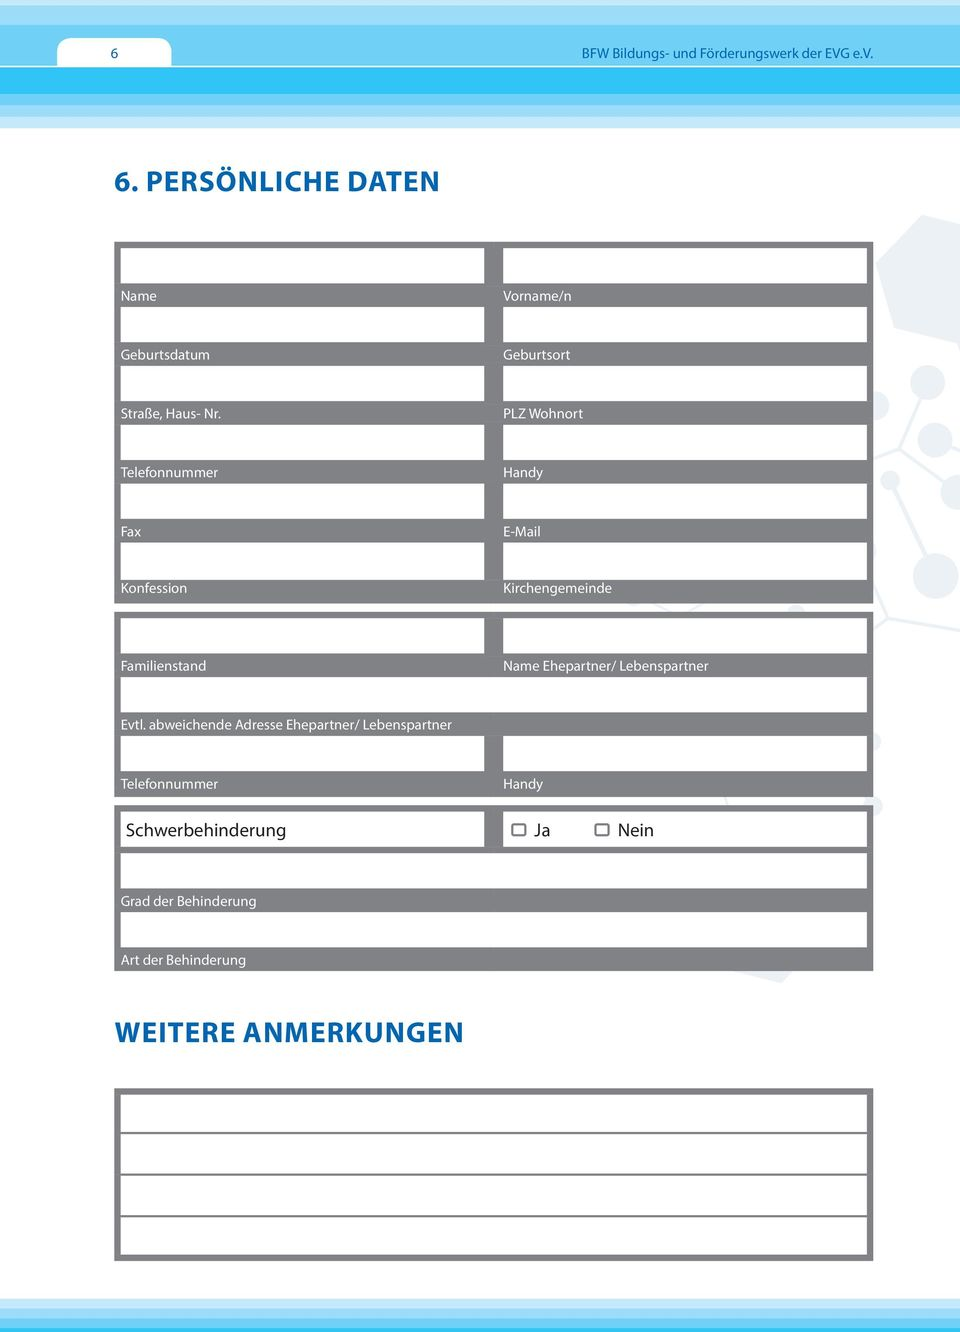 PLZ Wohnort Handy Fax E-Mail Konfession Kirchengemeinde Familienstand Name Ehepartner/